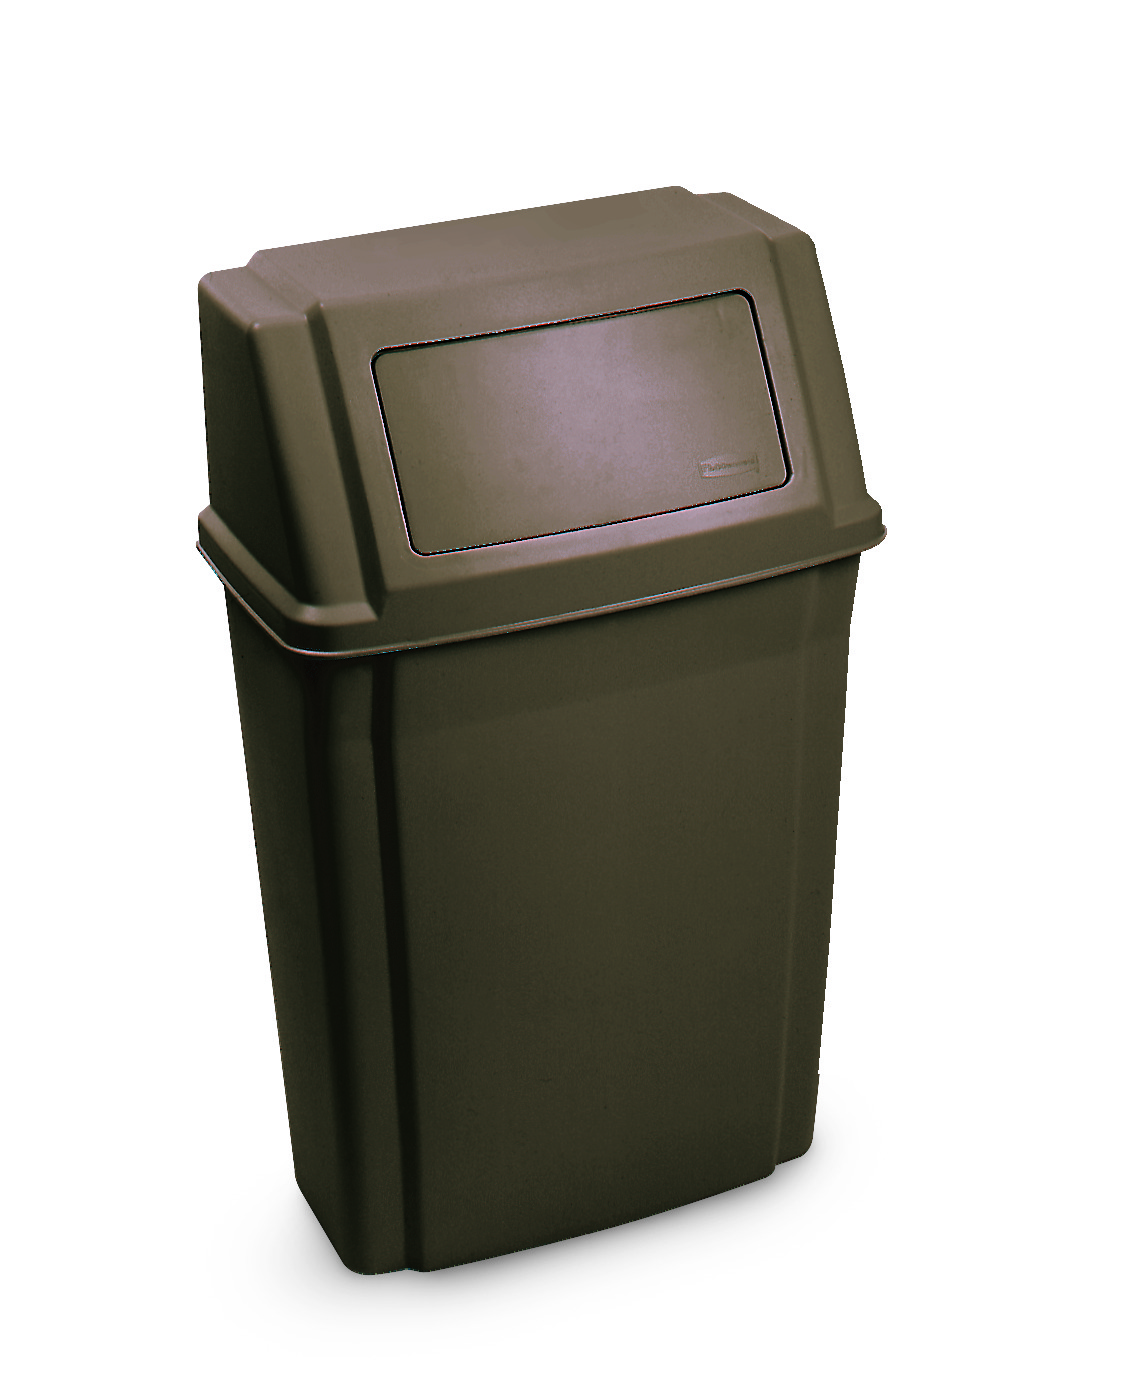 Wall Mount Trash Can | Wall Mounted Waste Bin | Slim Jim Trash Bin ...